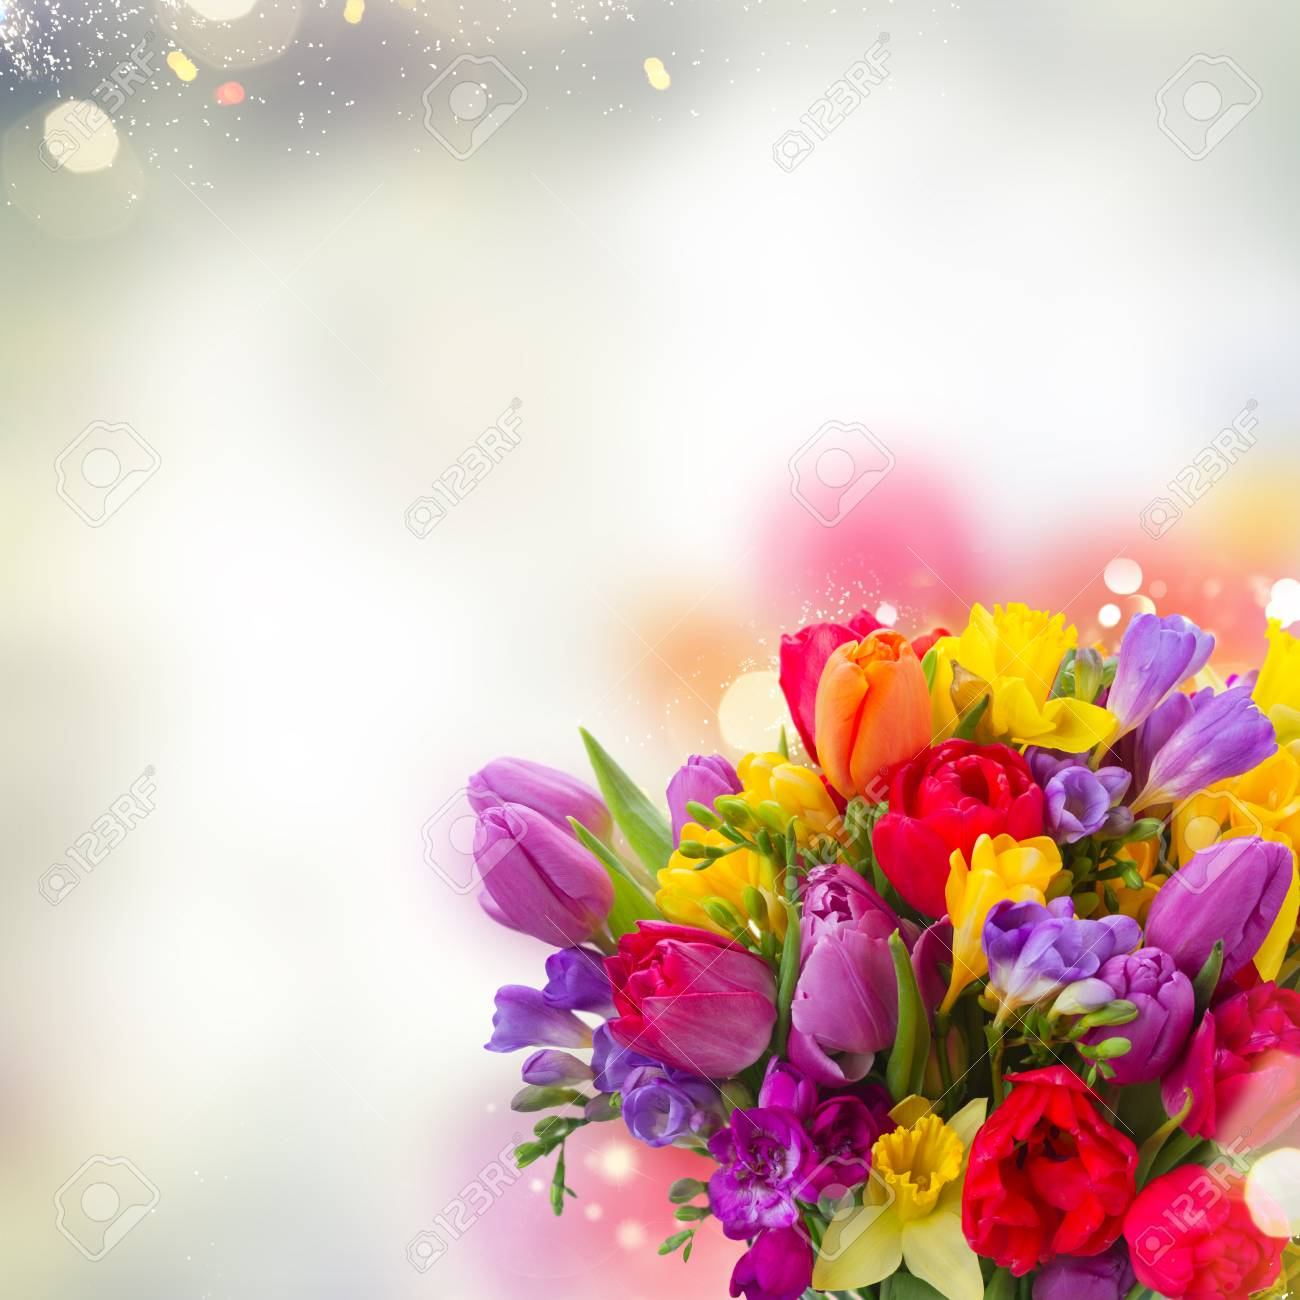 Bouquet Of Bright Spring Flowers Close Up Over Gray Bokeh Background